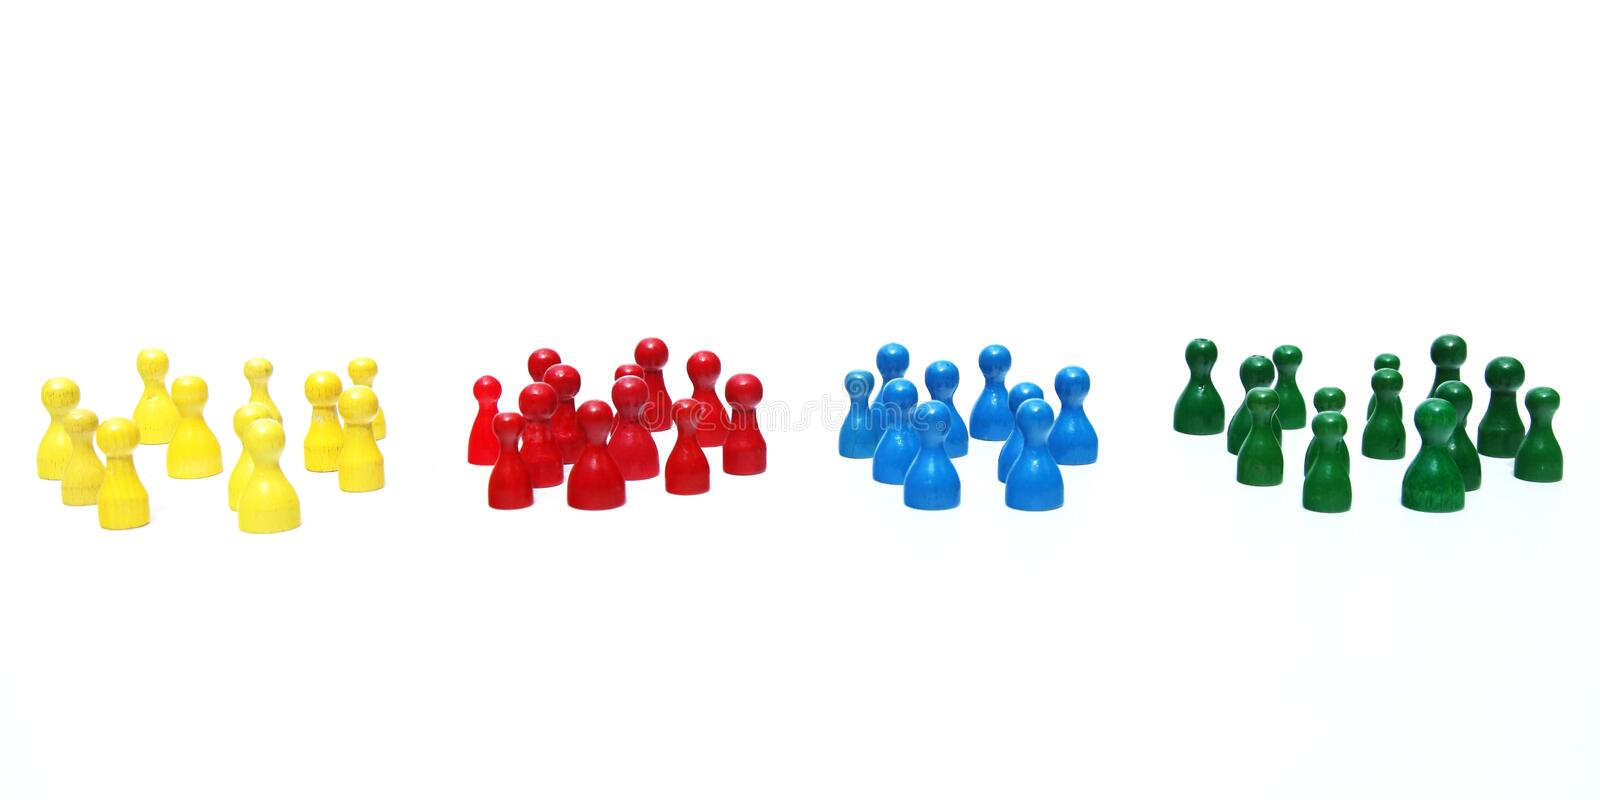 Teams. Several teams in different colors royalty free stock photo